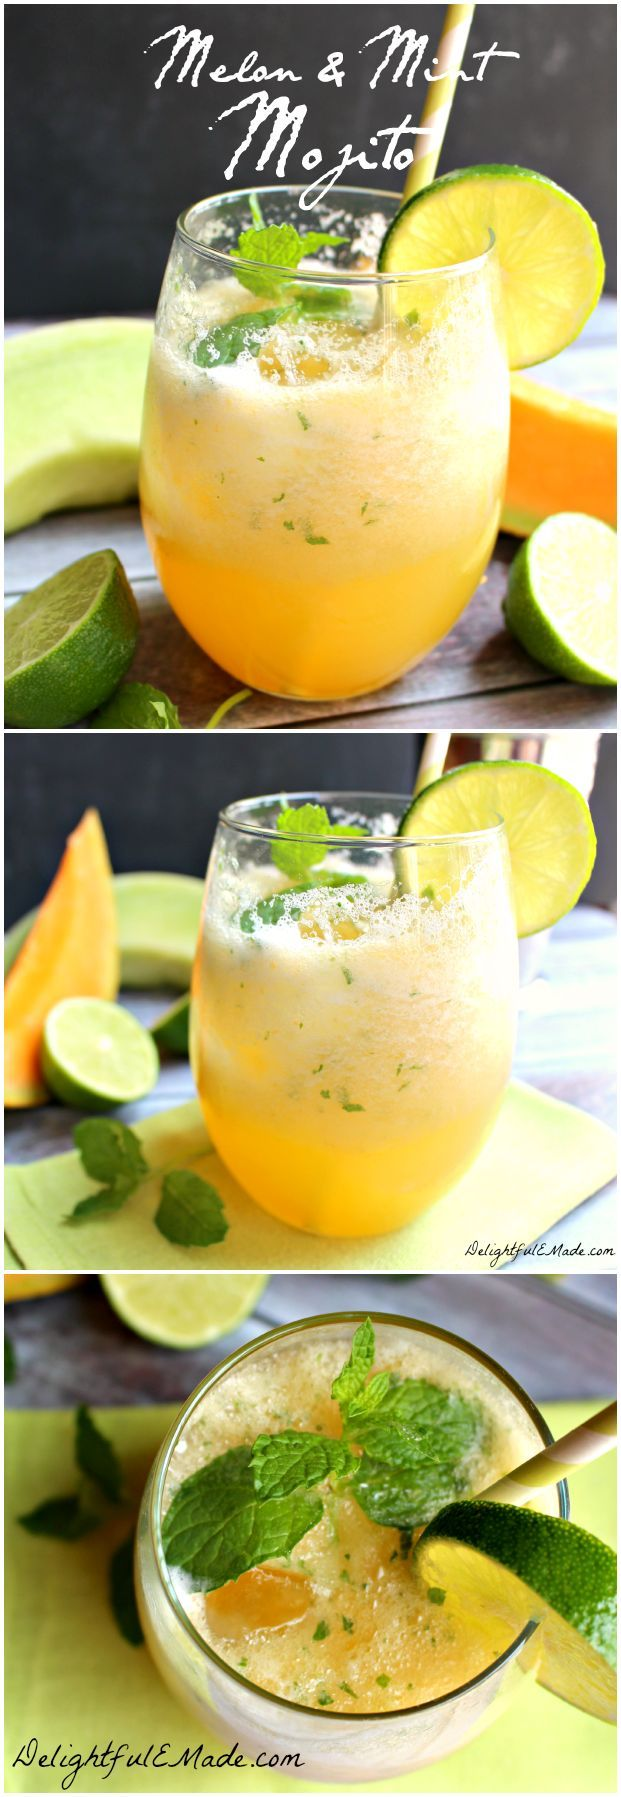 Served icy cold, this refreshing mojito cocktail is perfect on a hot day! Cantaloupe, honeydew, lime and mint make this drink amazing!!  Fantastic for Cinco de Mayo, too! #Delightfulemade #Mojito #Cocktail